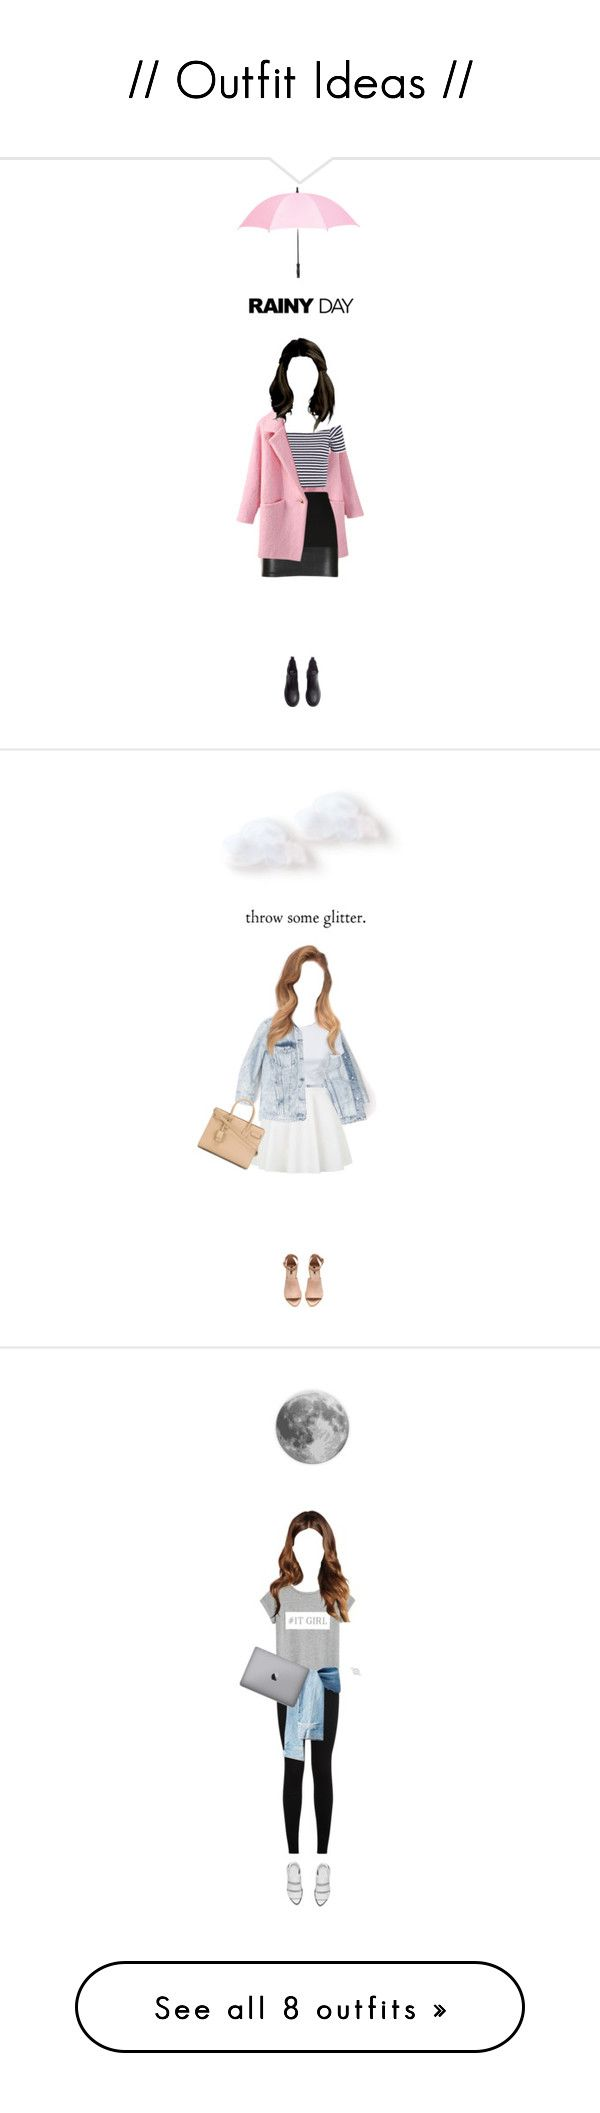 """""""// Outfit Ideas //"""" by demigeorgia ❤ liked on Polyvore featuring Mode, Leighton, Bailey 44, H&M, AQ/AQ, Topshop, Yves Saint Laurent, MANGO, Alexander Wang und Skagen"""